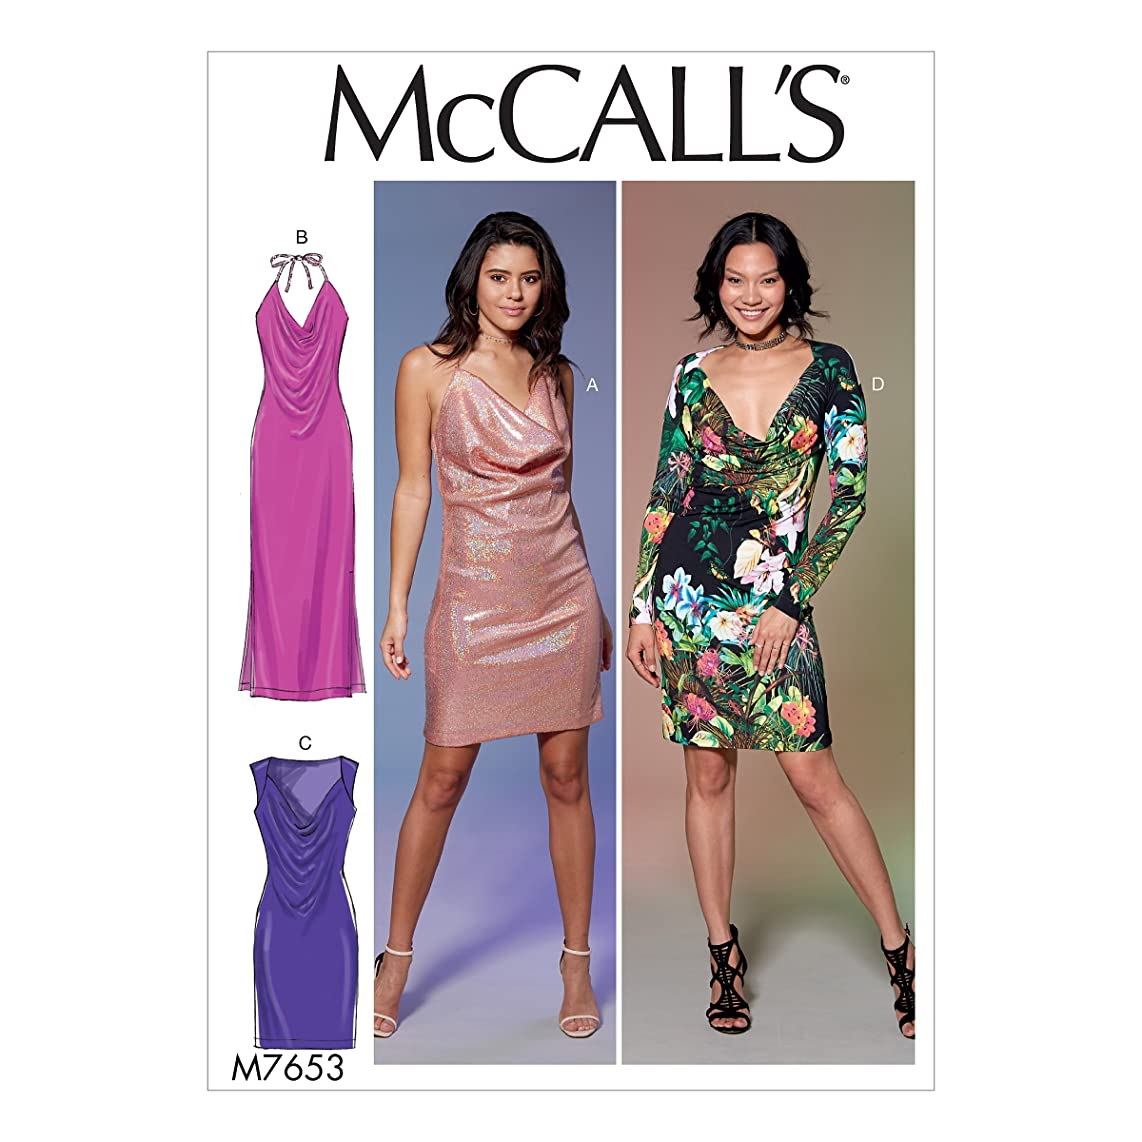 McCall Patterns M7653OSZ Misses' Draped Front, Side-Panel Dresses